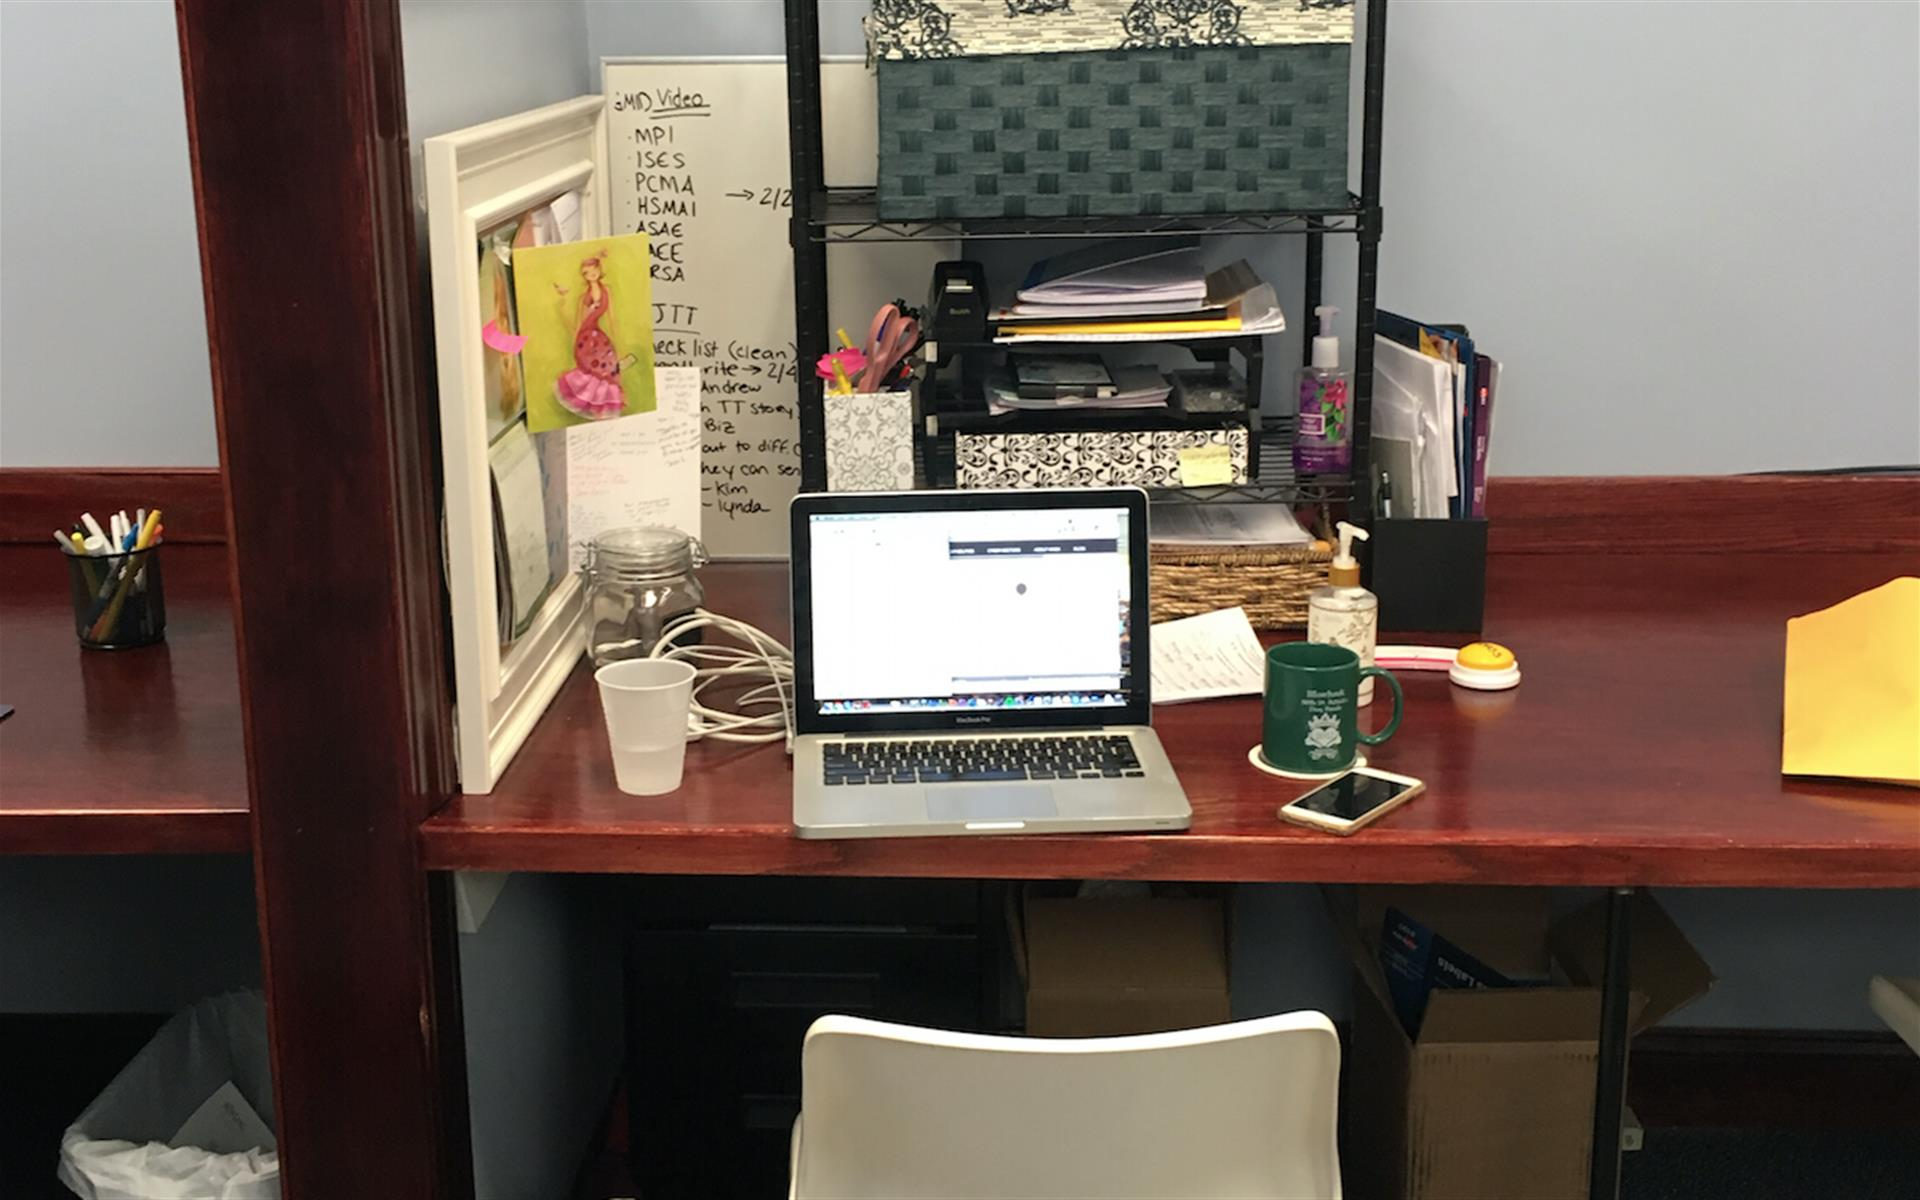 The CoWorking Space - CoWorking Hotspot Desk 6